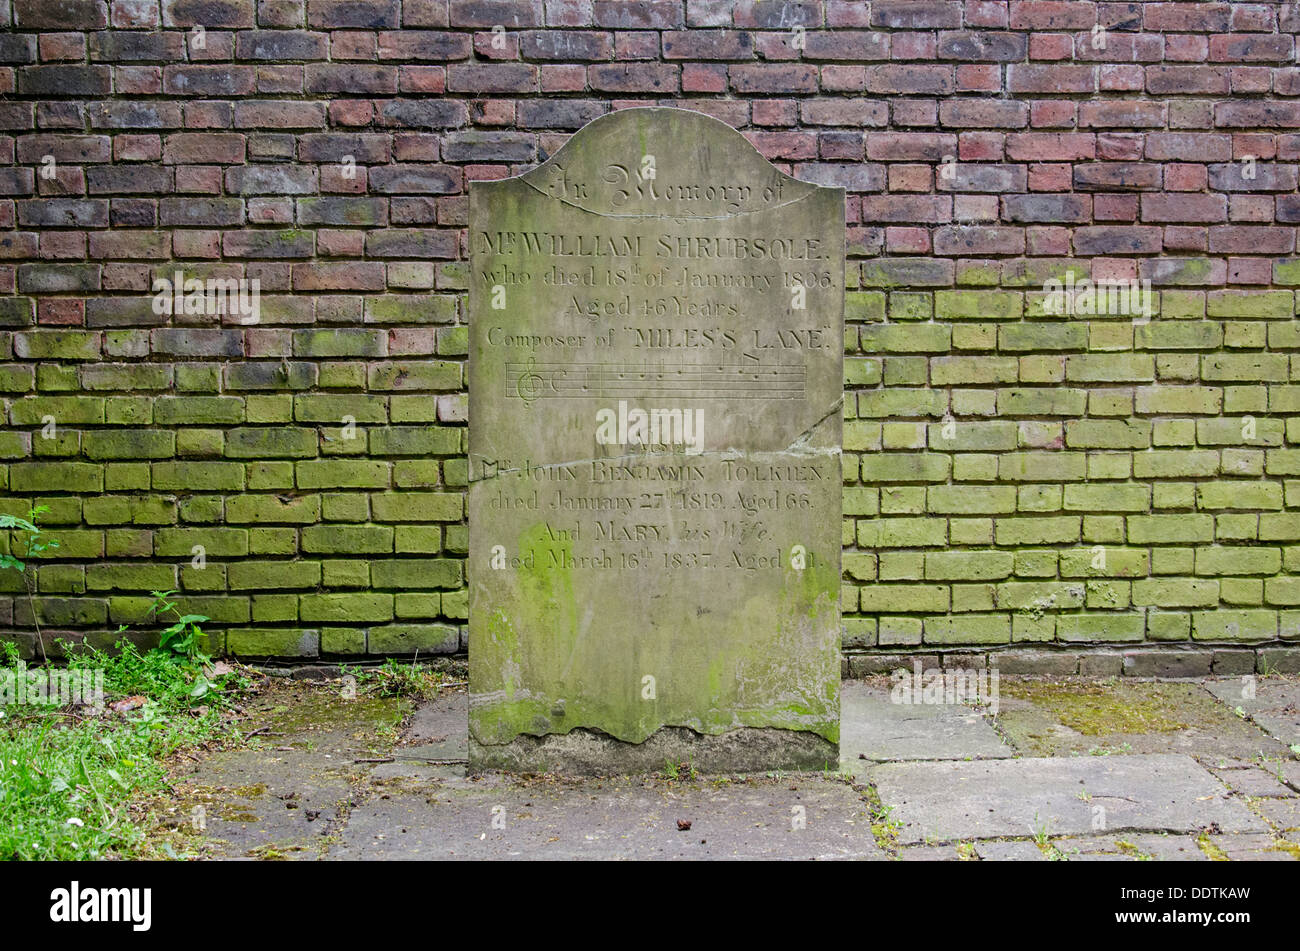 A headstone in Bunhill Fields Burial Ground remembering Mr William Shrubsole, Mr Benjamin Tolkien and his wife Mary. - Stock Image